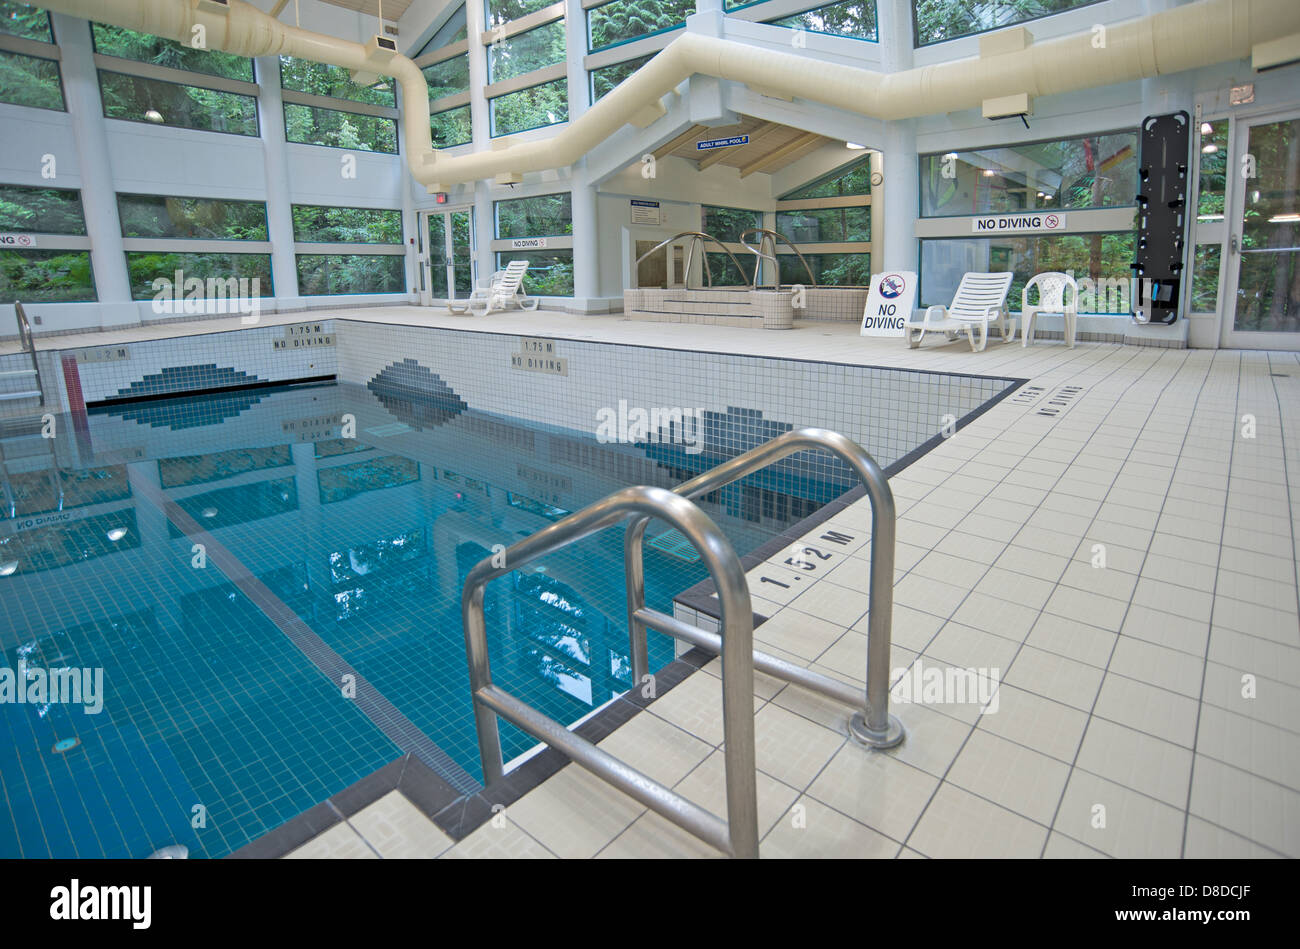 Merveilleux Public Indoor Wave Swimming Pool   Stock Image